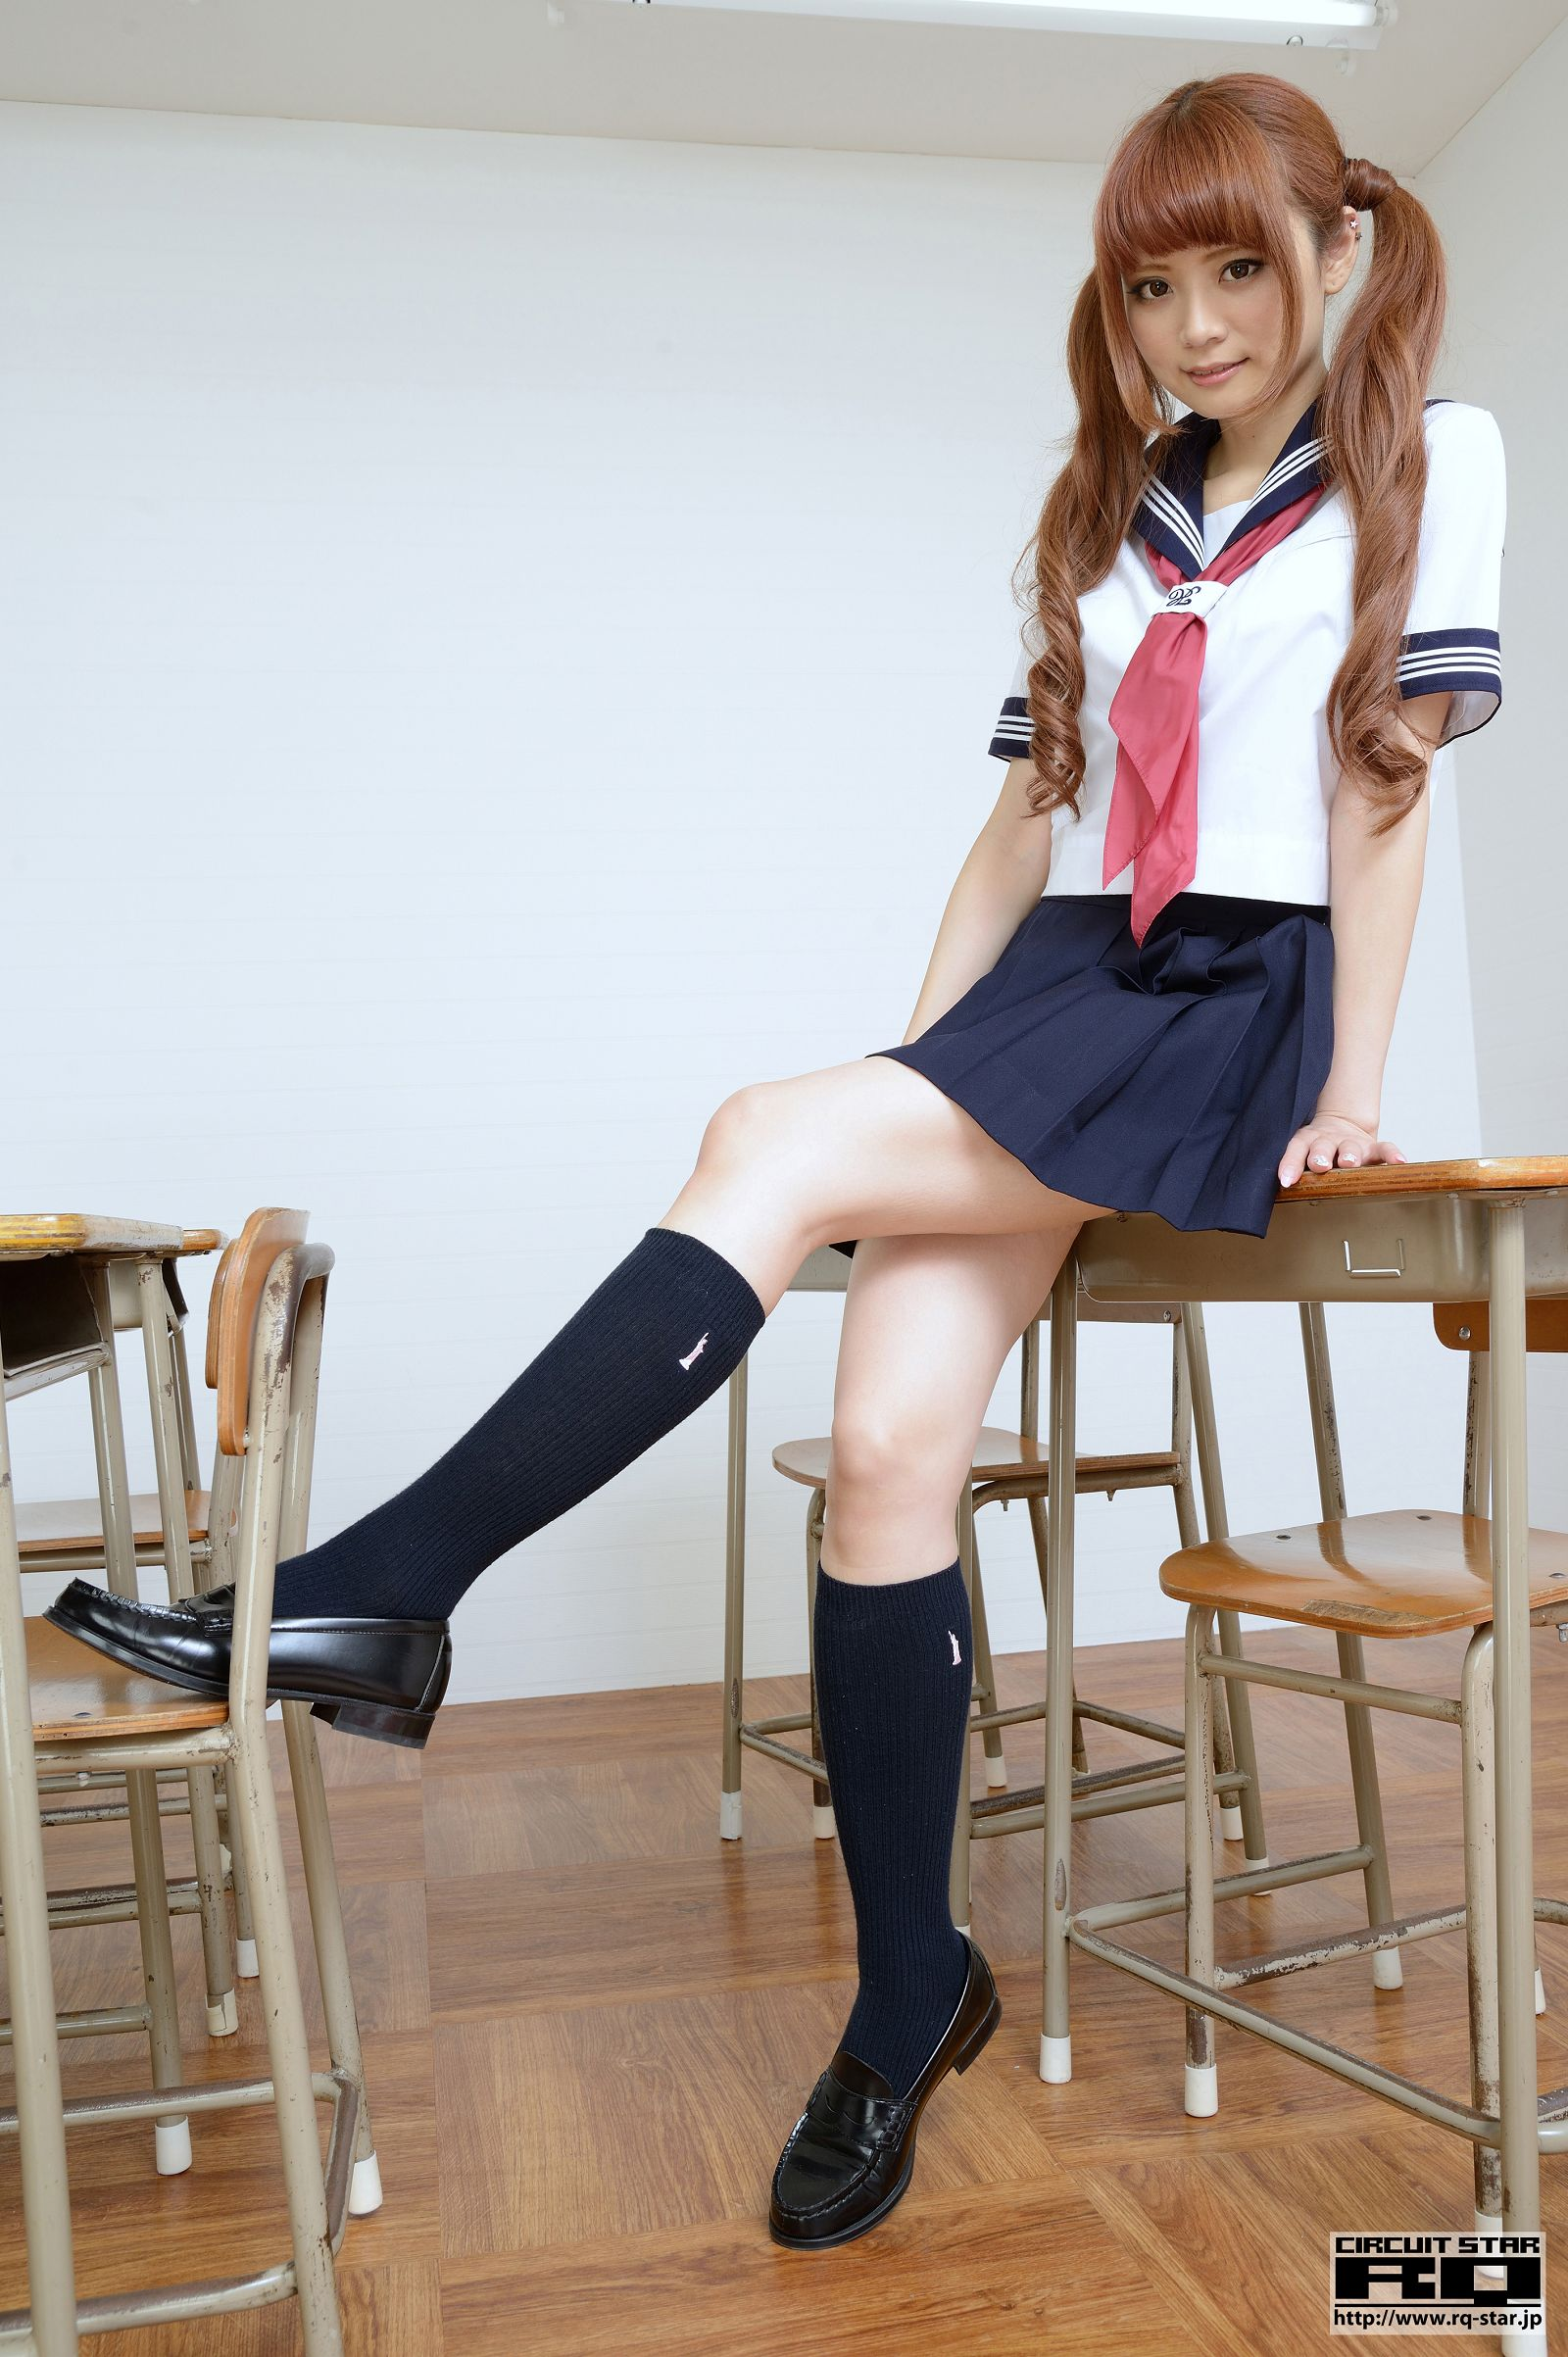 [RQ STAR美女] NO.00831 Aine Sayuka 朔矢あいね Sailor Girl[80P] RQ STAR 第2张